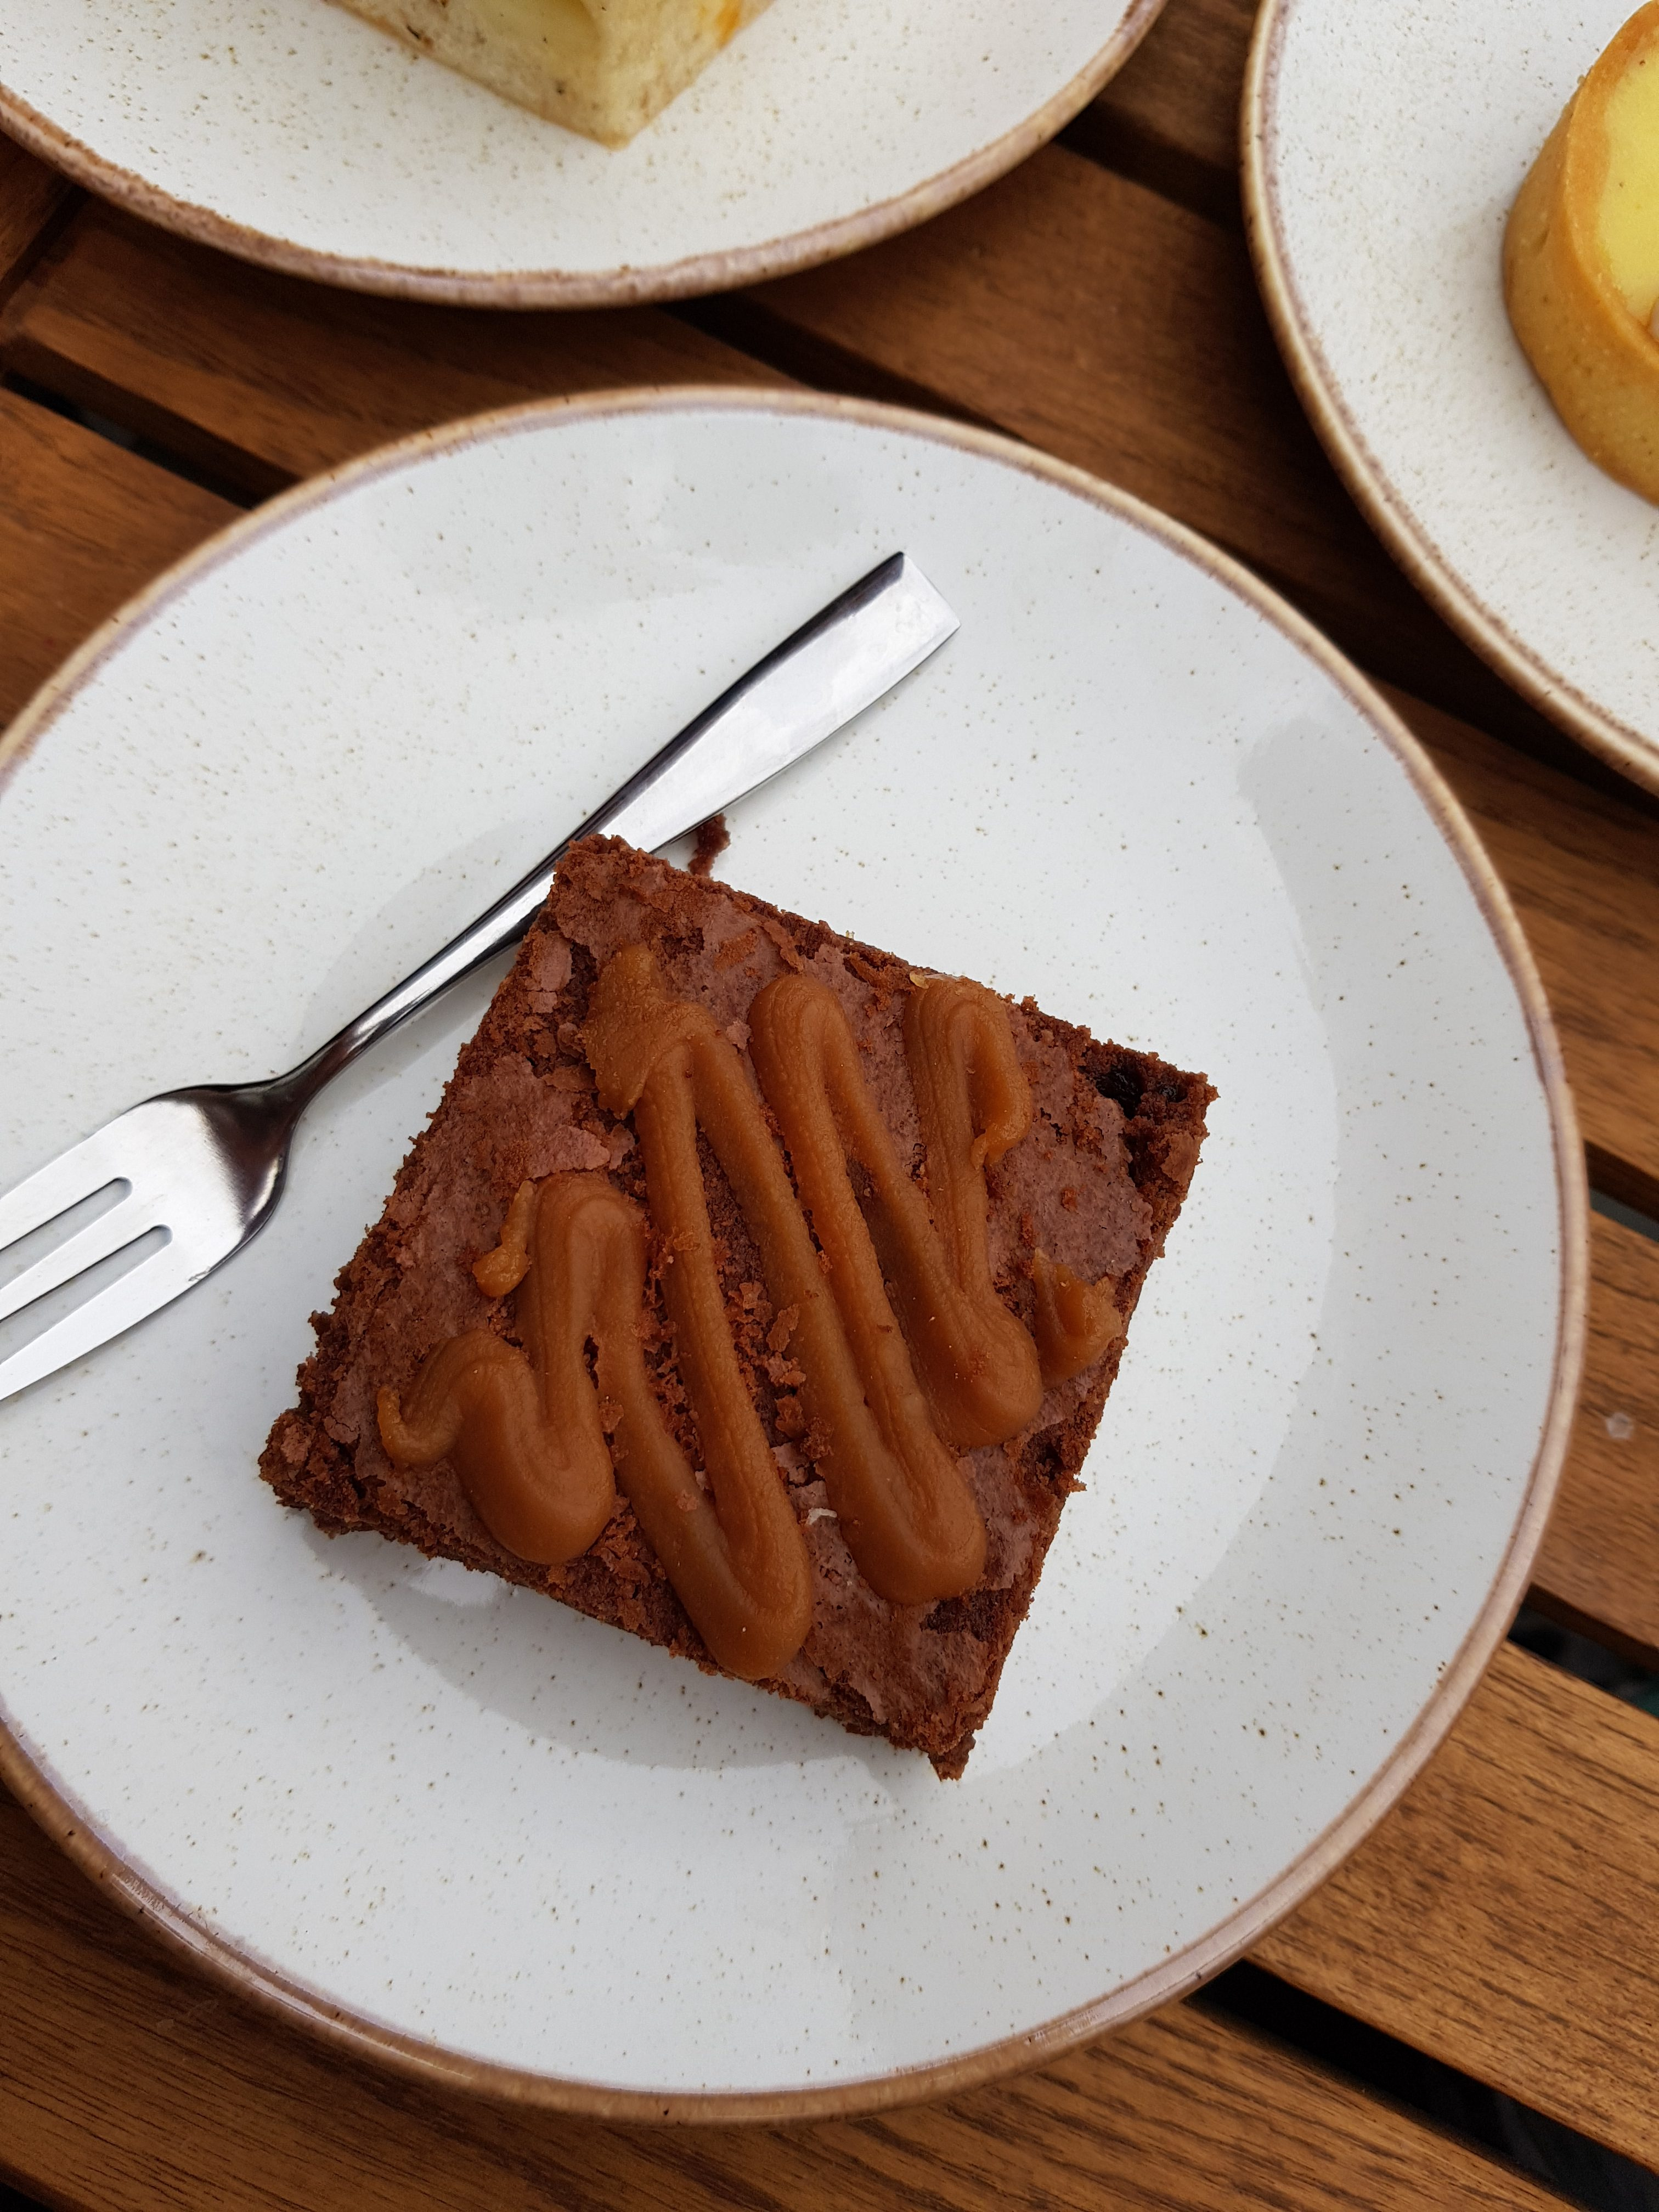 Bridge Baker review on Wandsworth Bridge road, Fulham. Vegetarian friendly, brunch available. Some Vegan options. chocolate butterscotch brownie